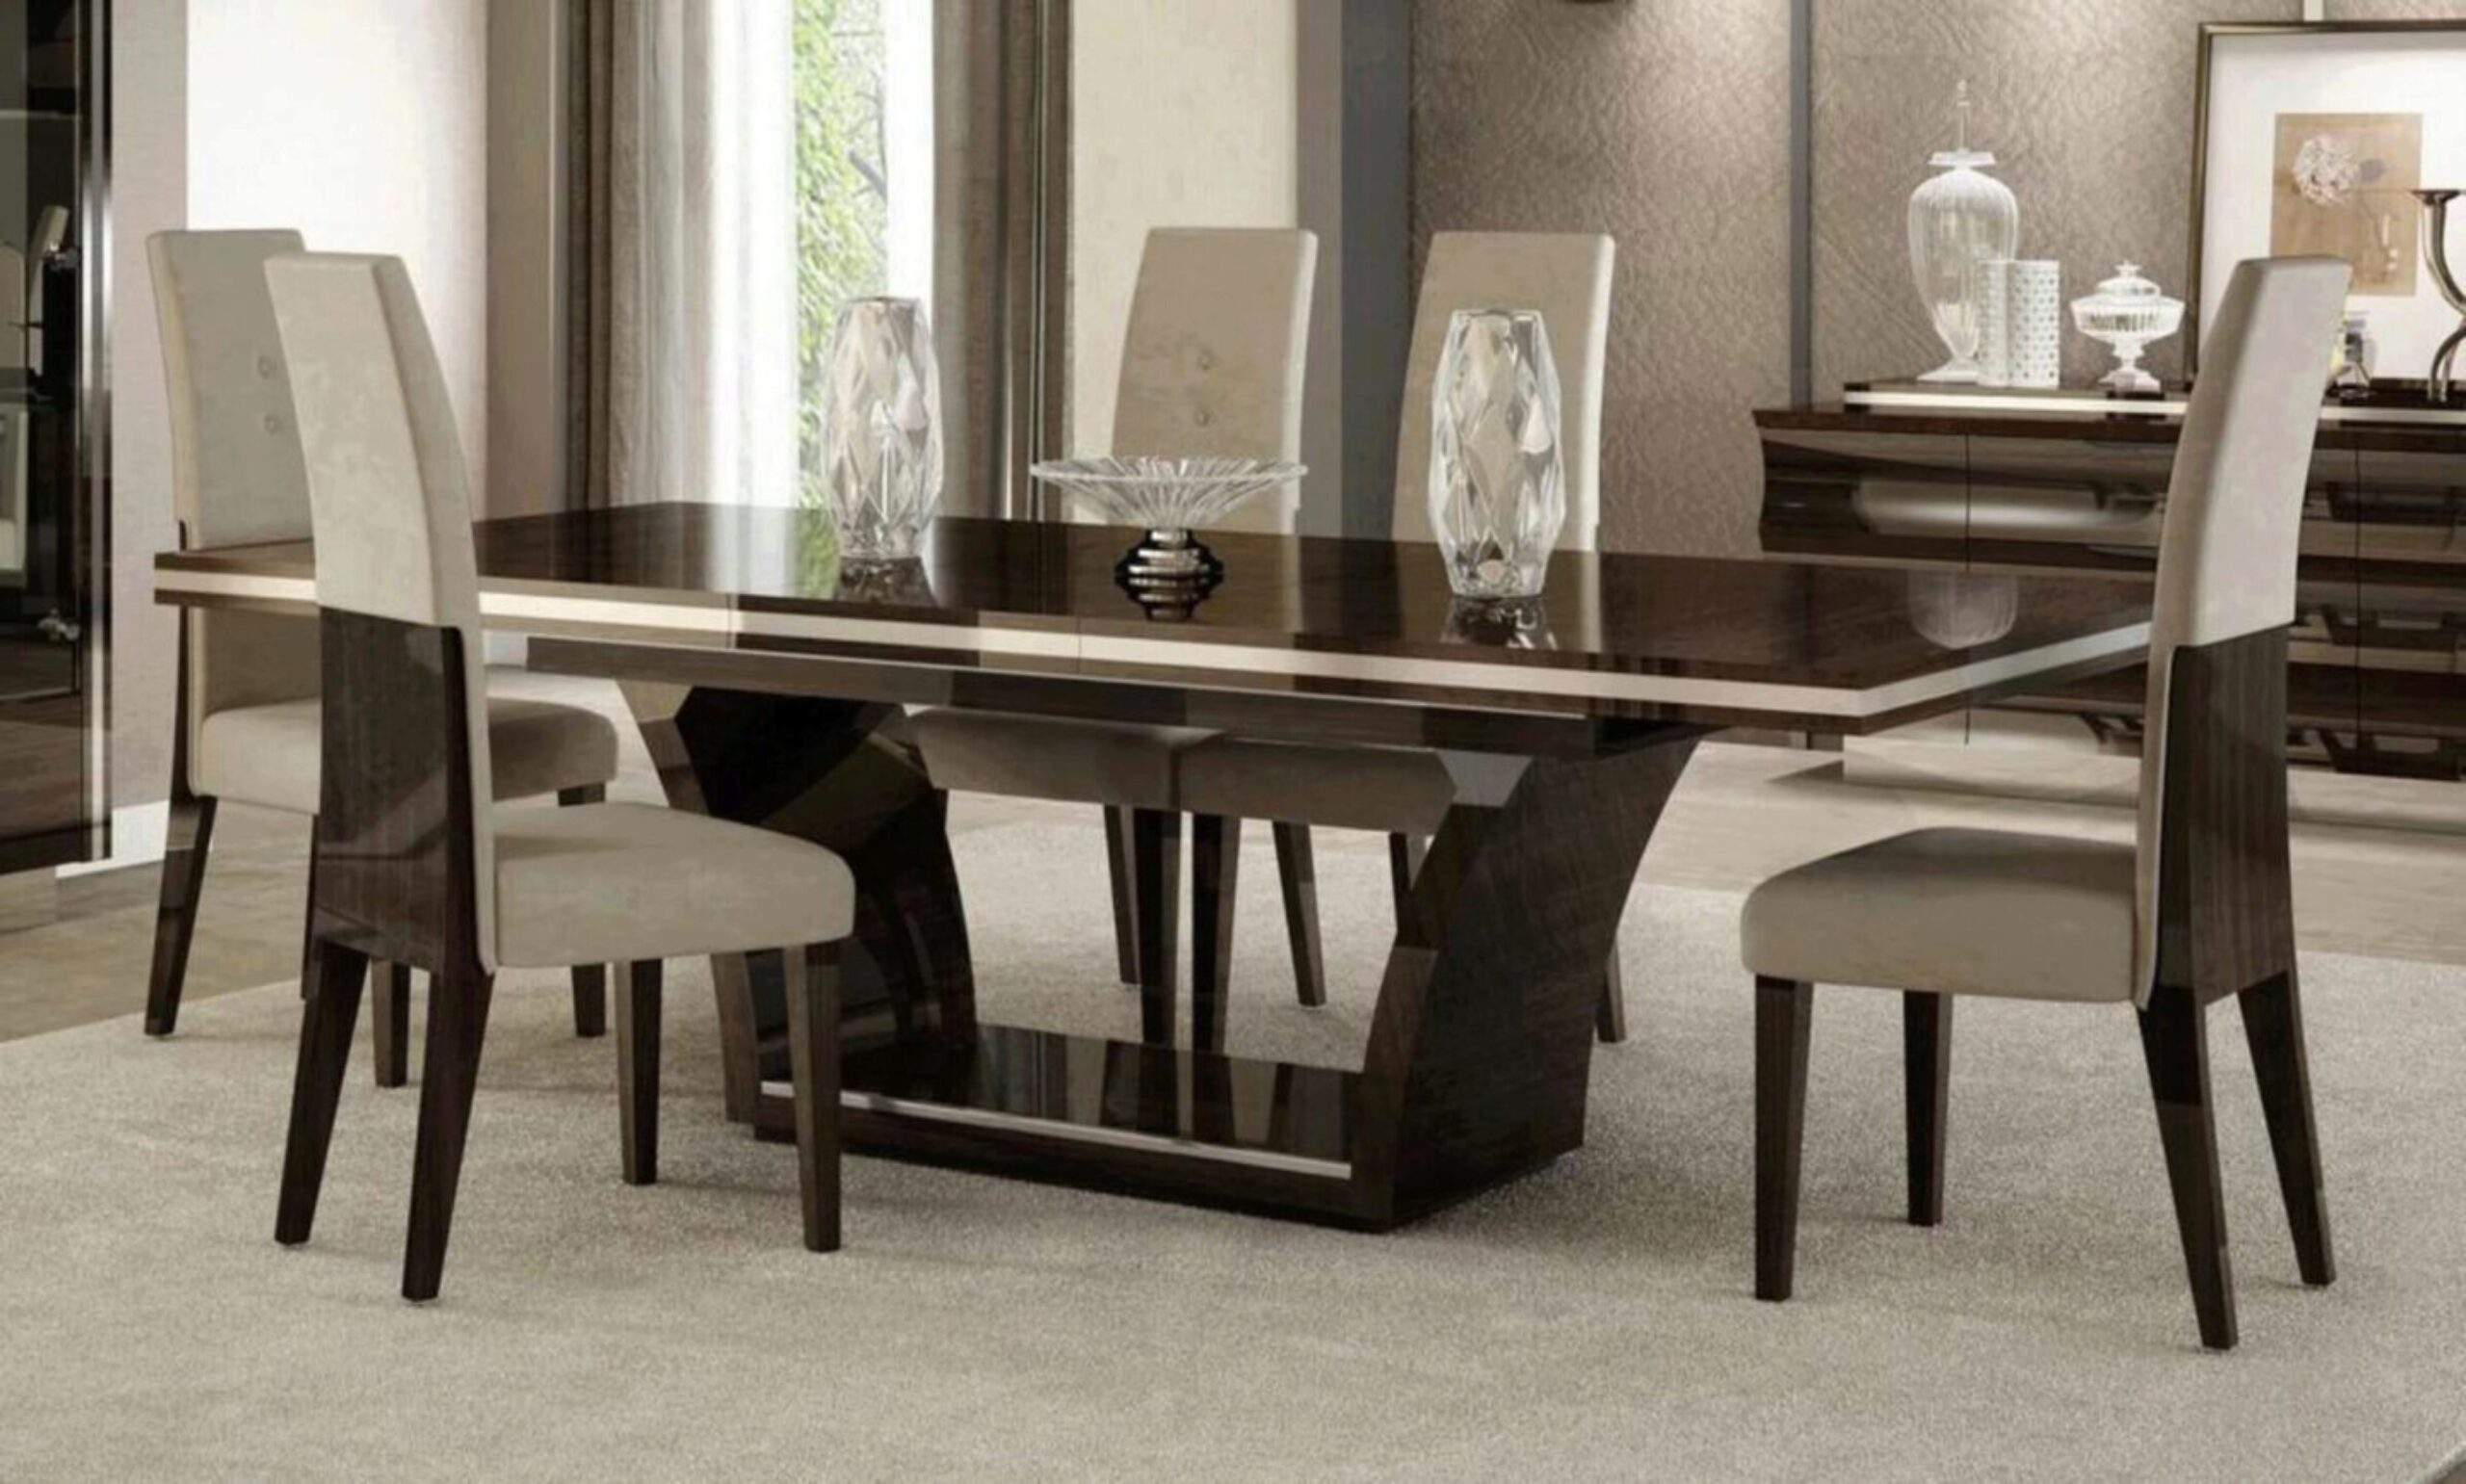 Contemporary Wenge Lacquer Finish Dining Table Set 9Pcs Soflex Sylvester